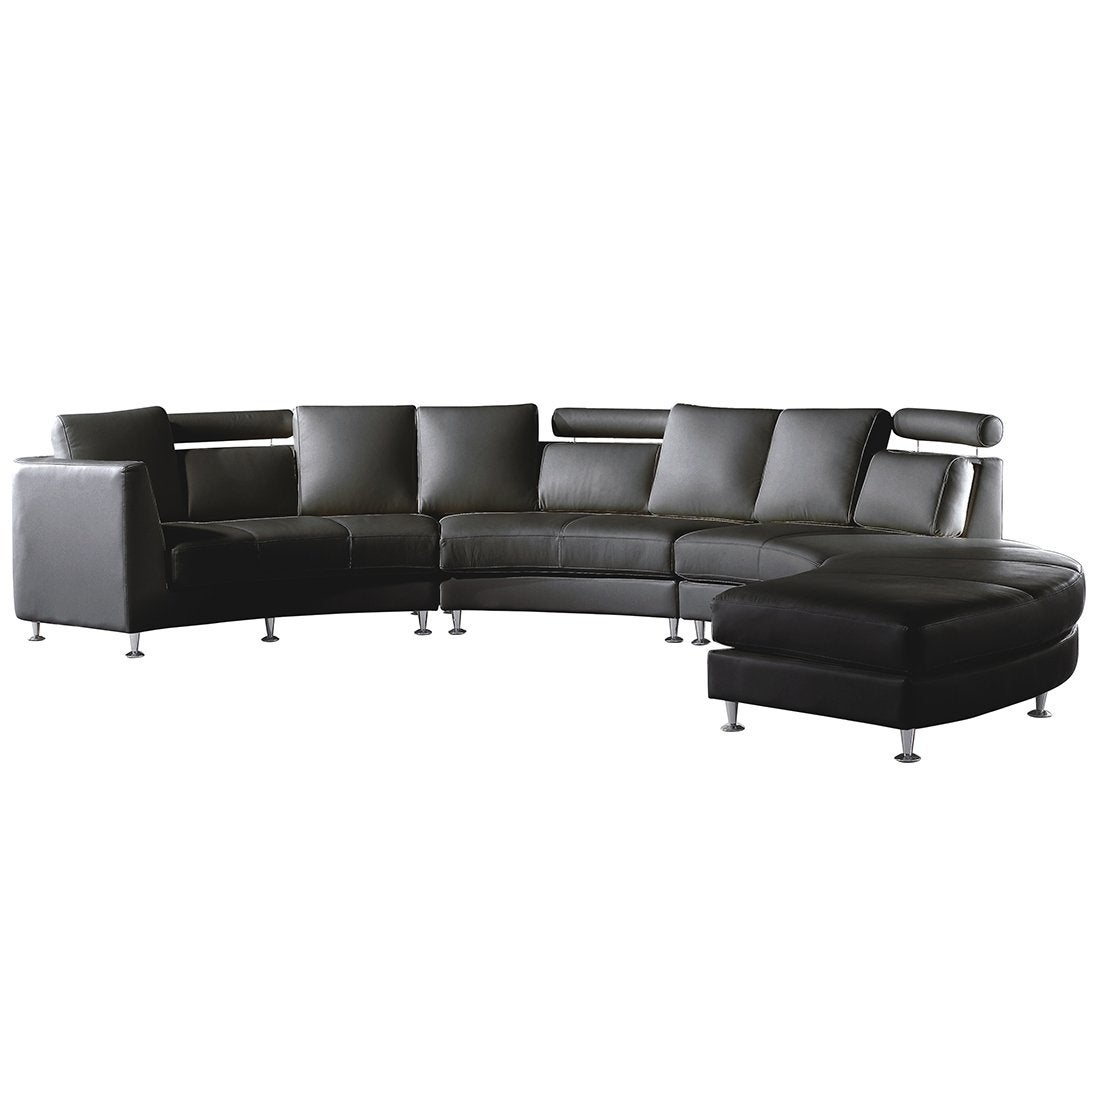 Curved Sectional Sofa - Black Leather Rotunde